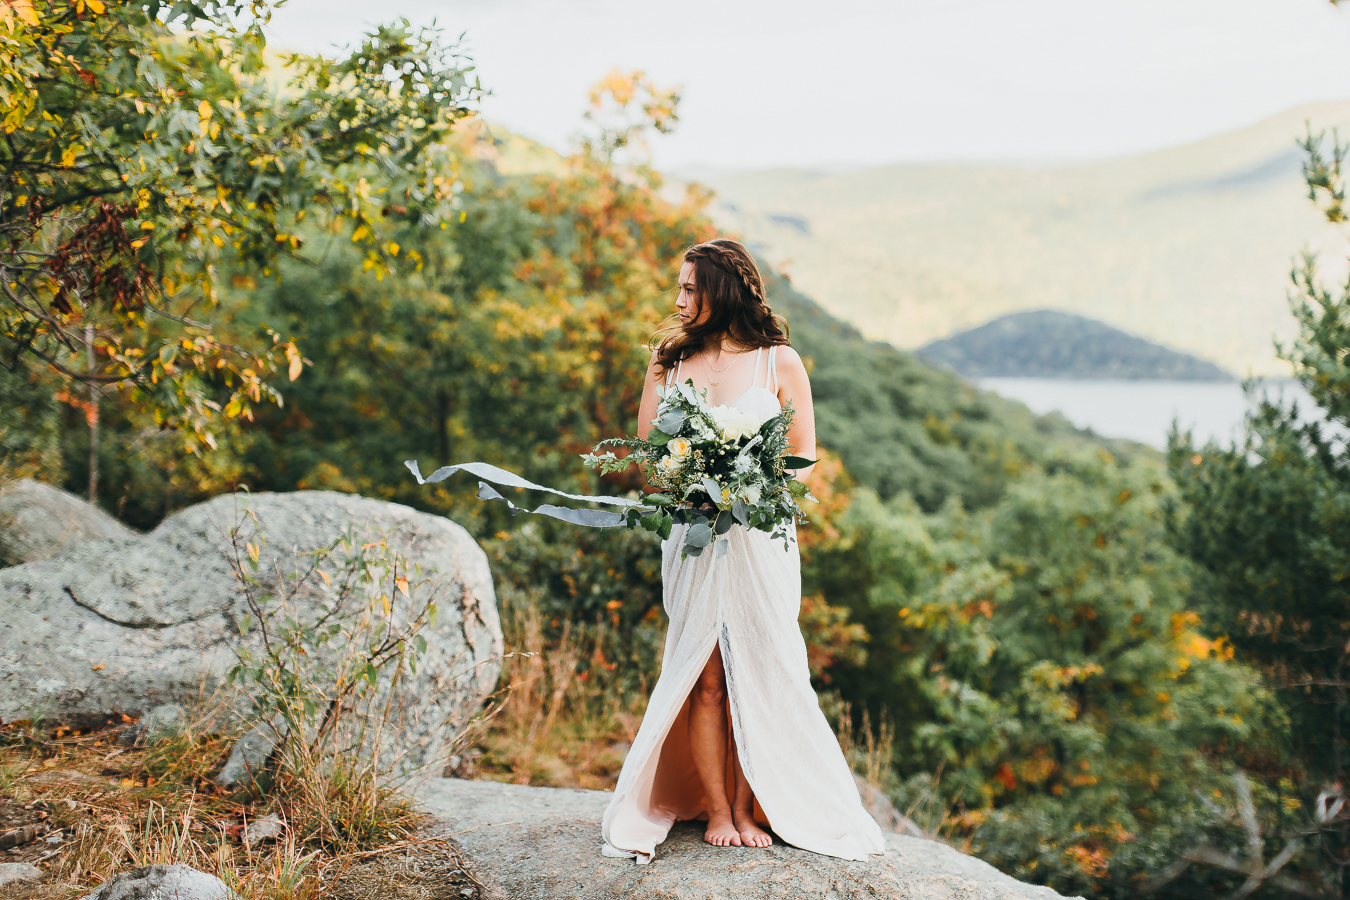 storm-king-elopement-emily-kirke-photography (29 of 45).jpg